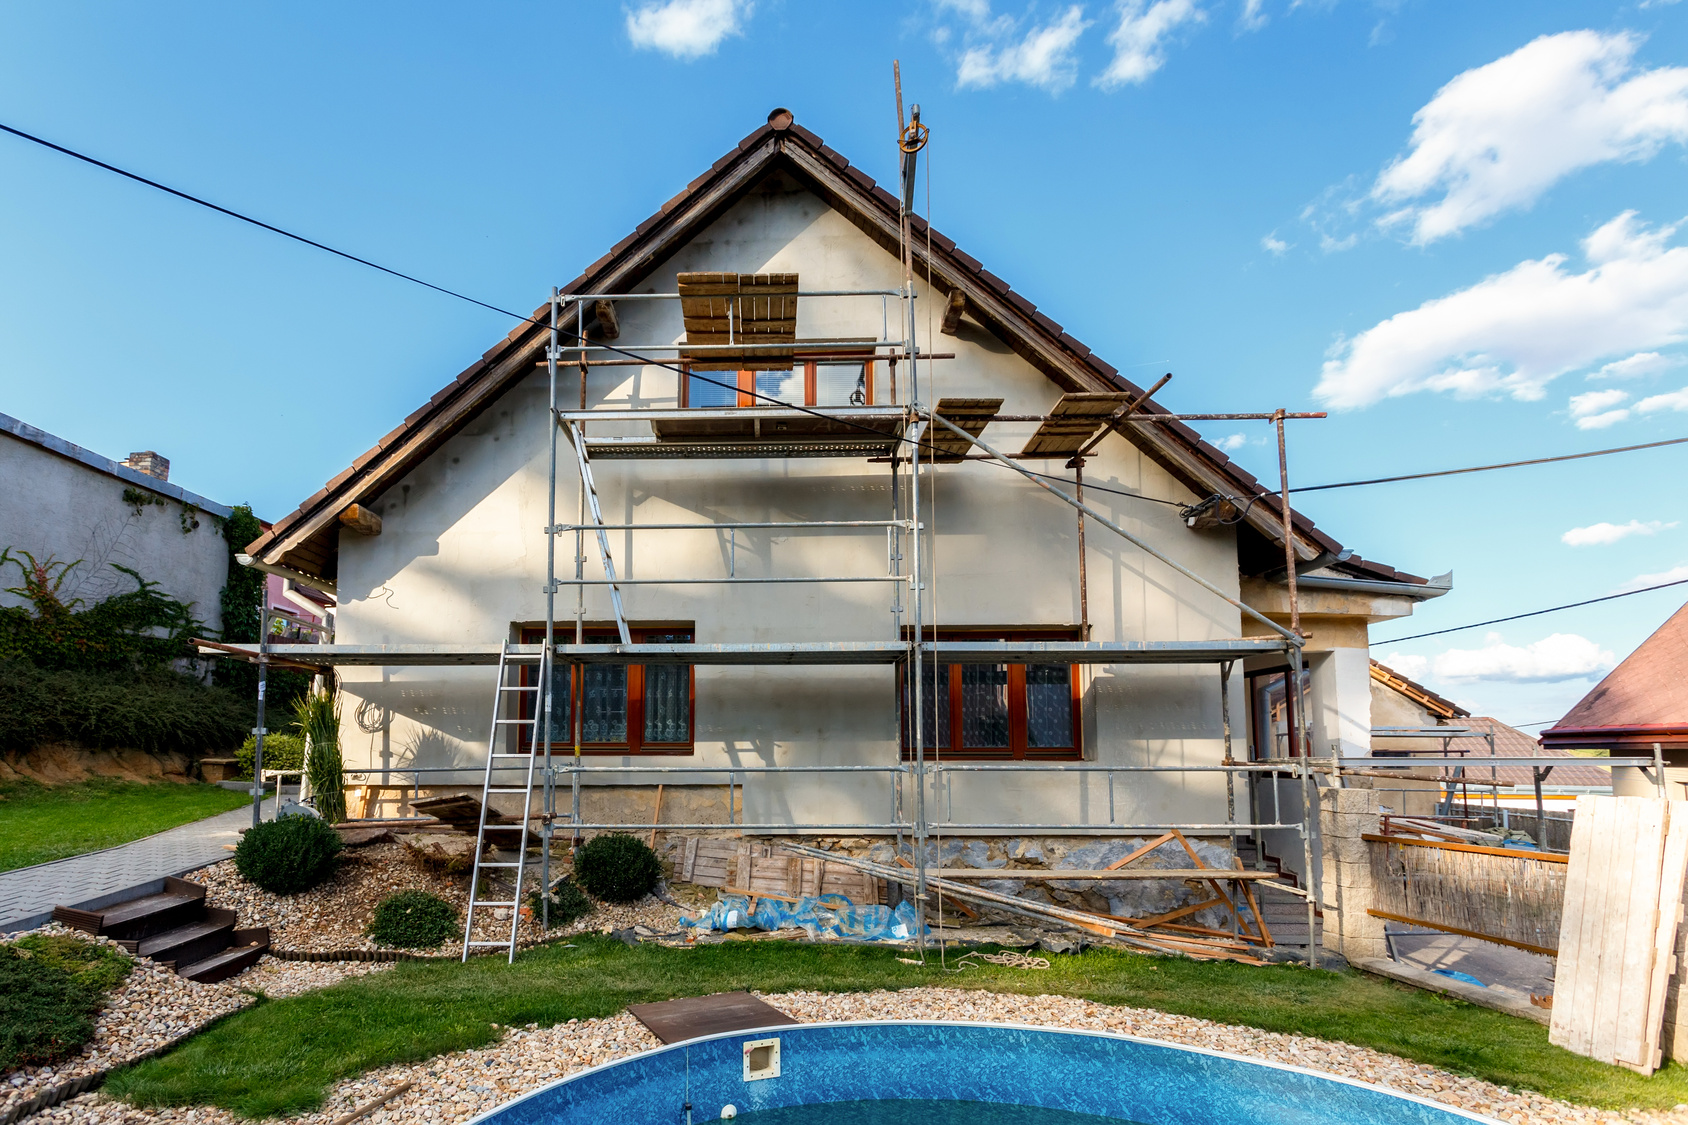 House Renovations: How To Choose The Best Service Provider